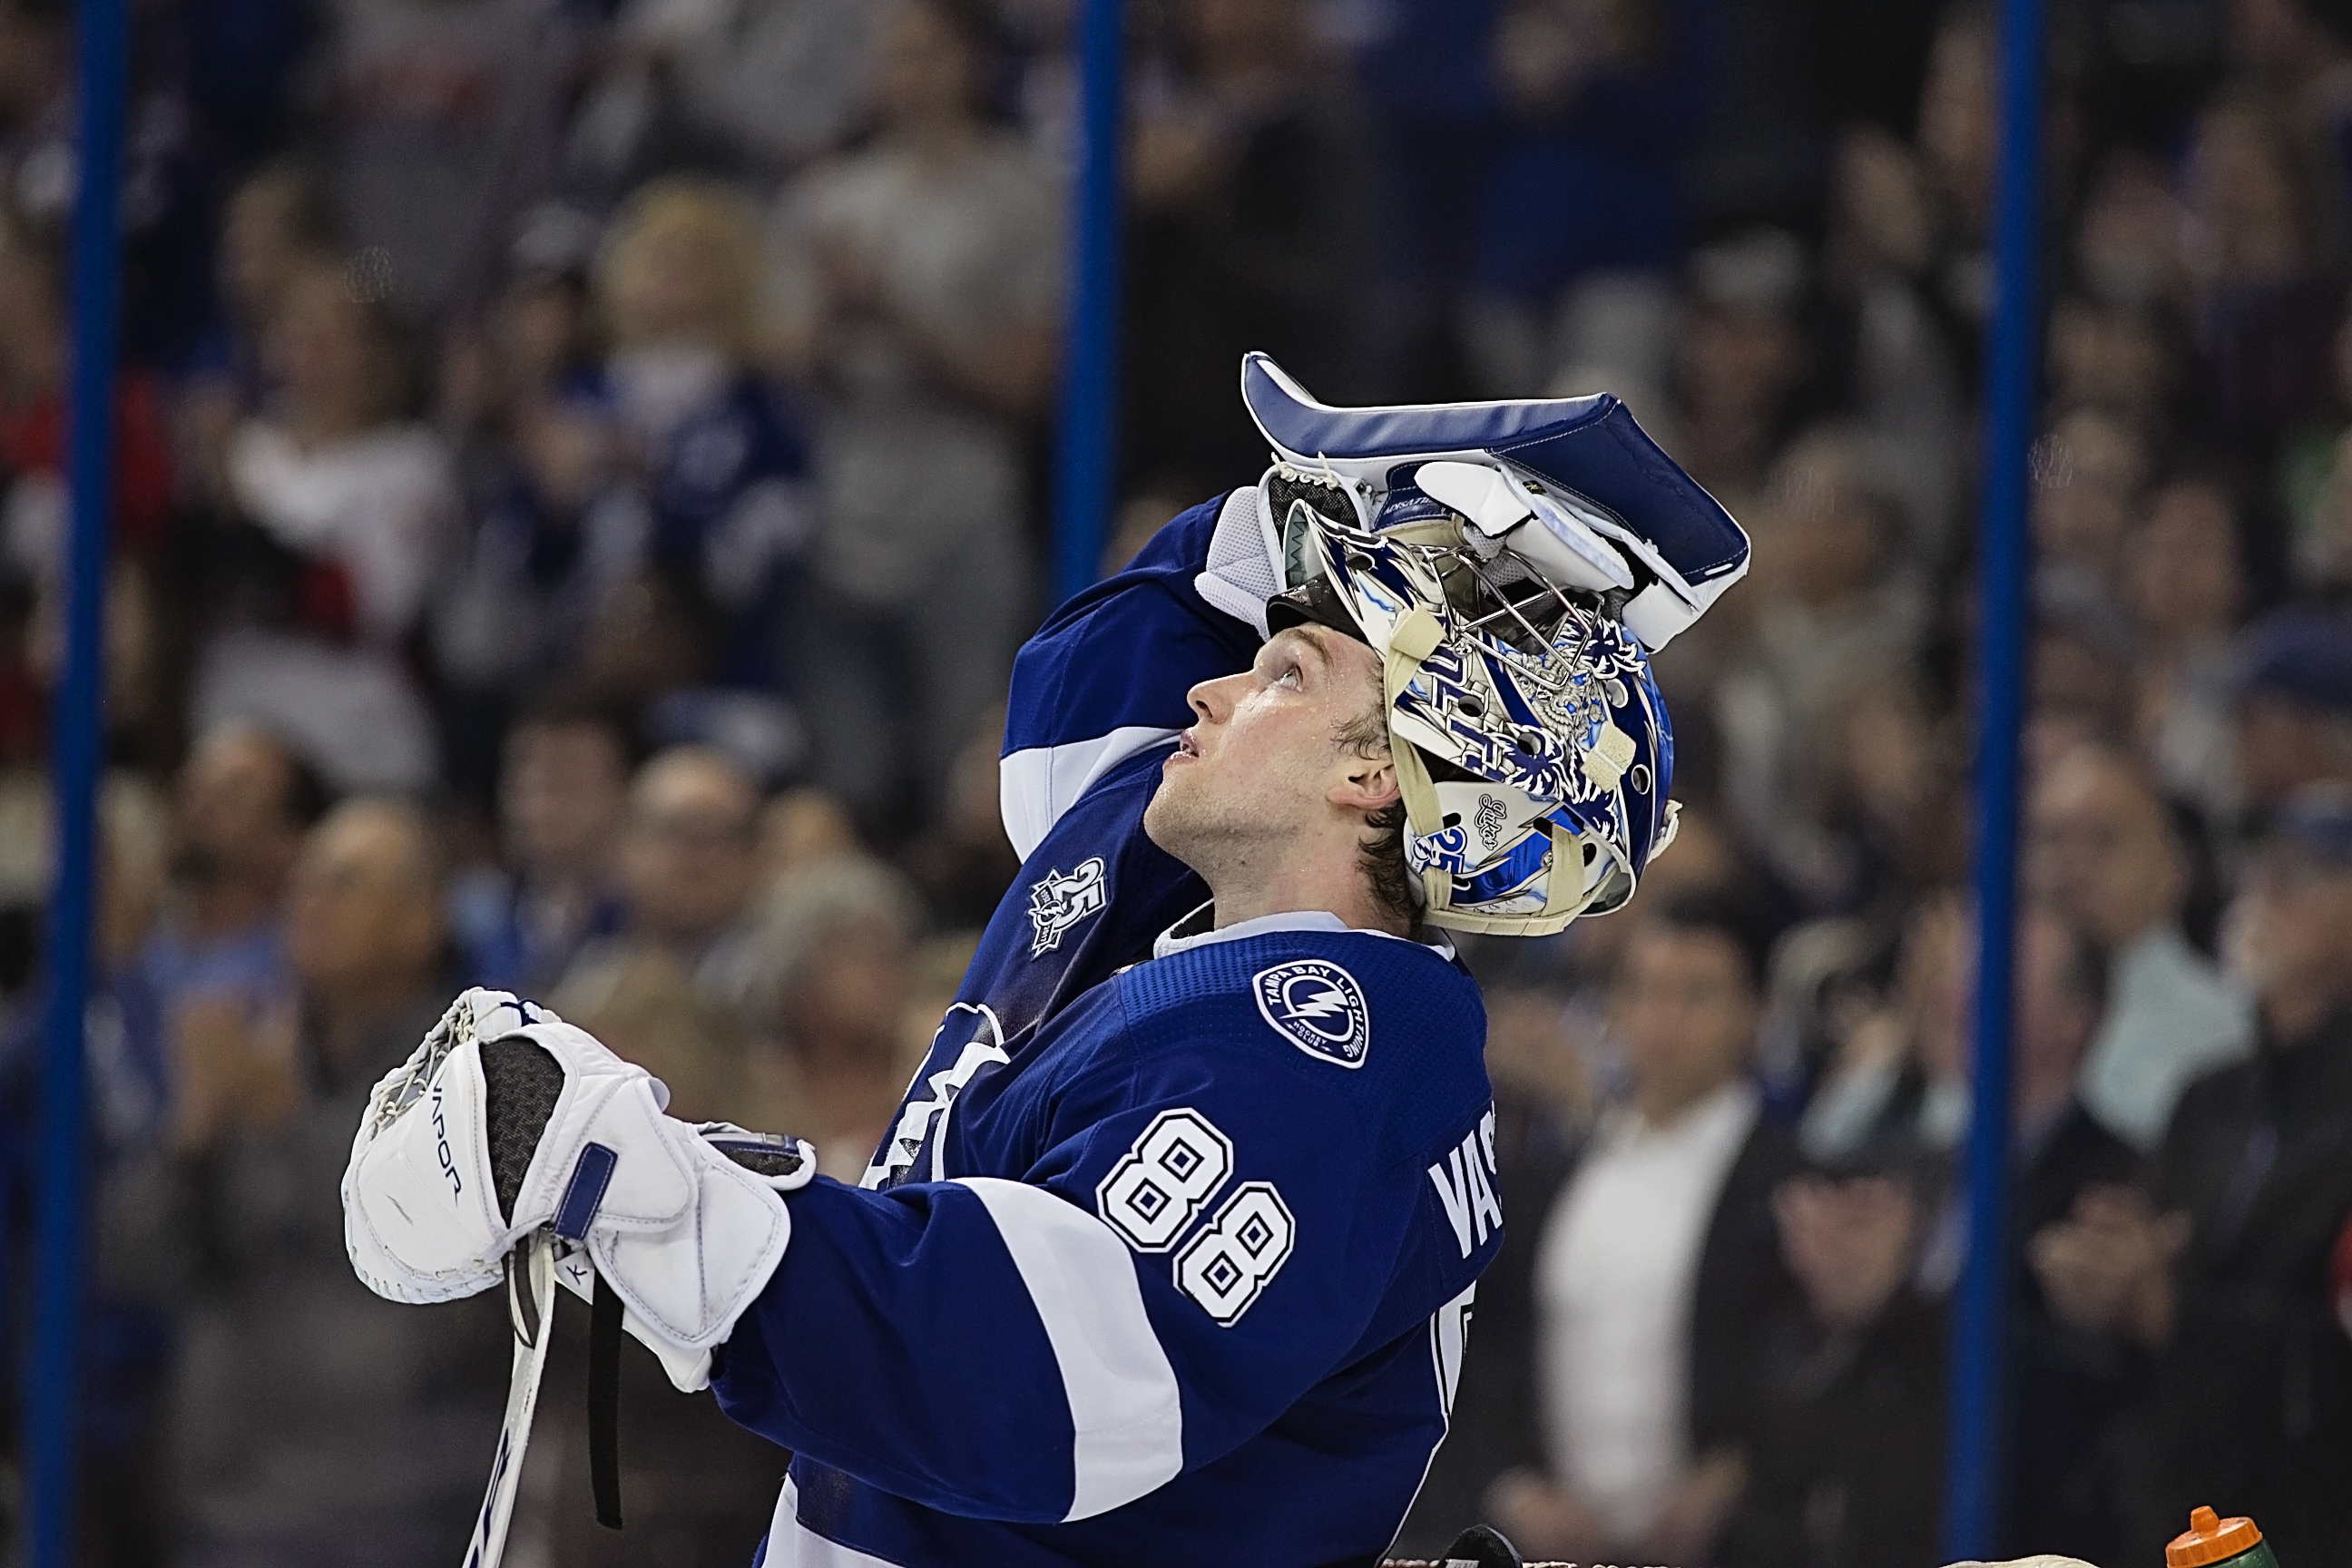 Vasilevskiy watches another goal scored in replay./CARMEN MANDATO